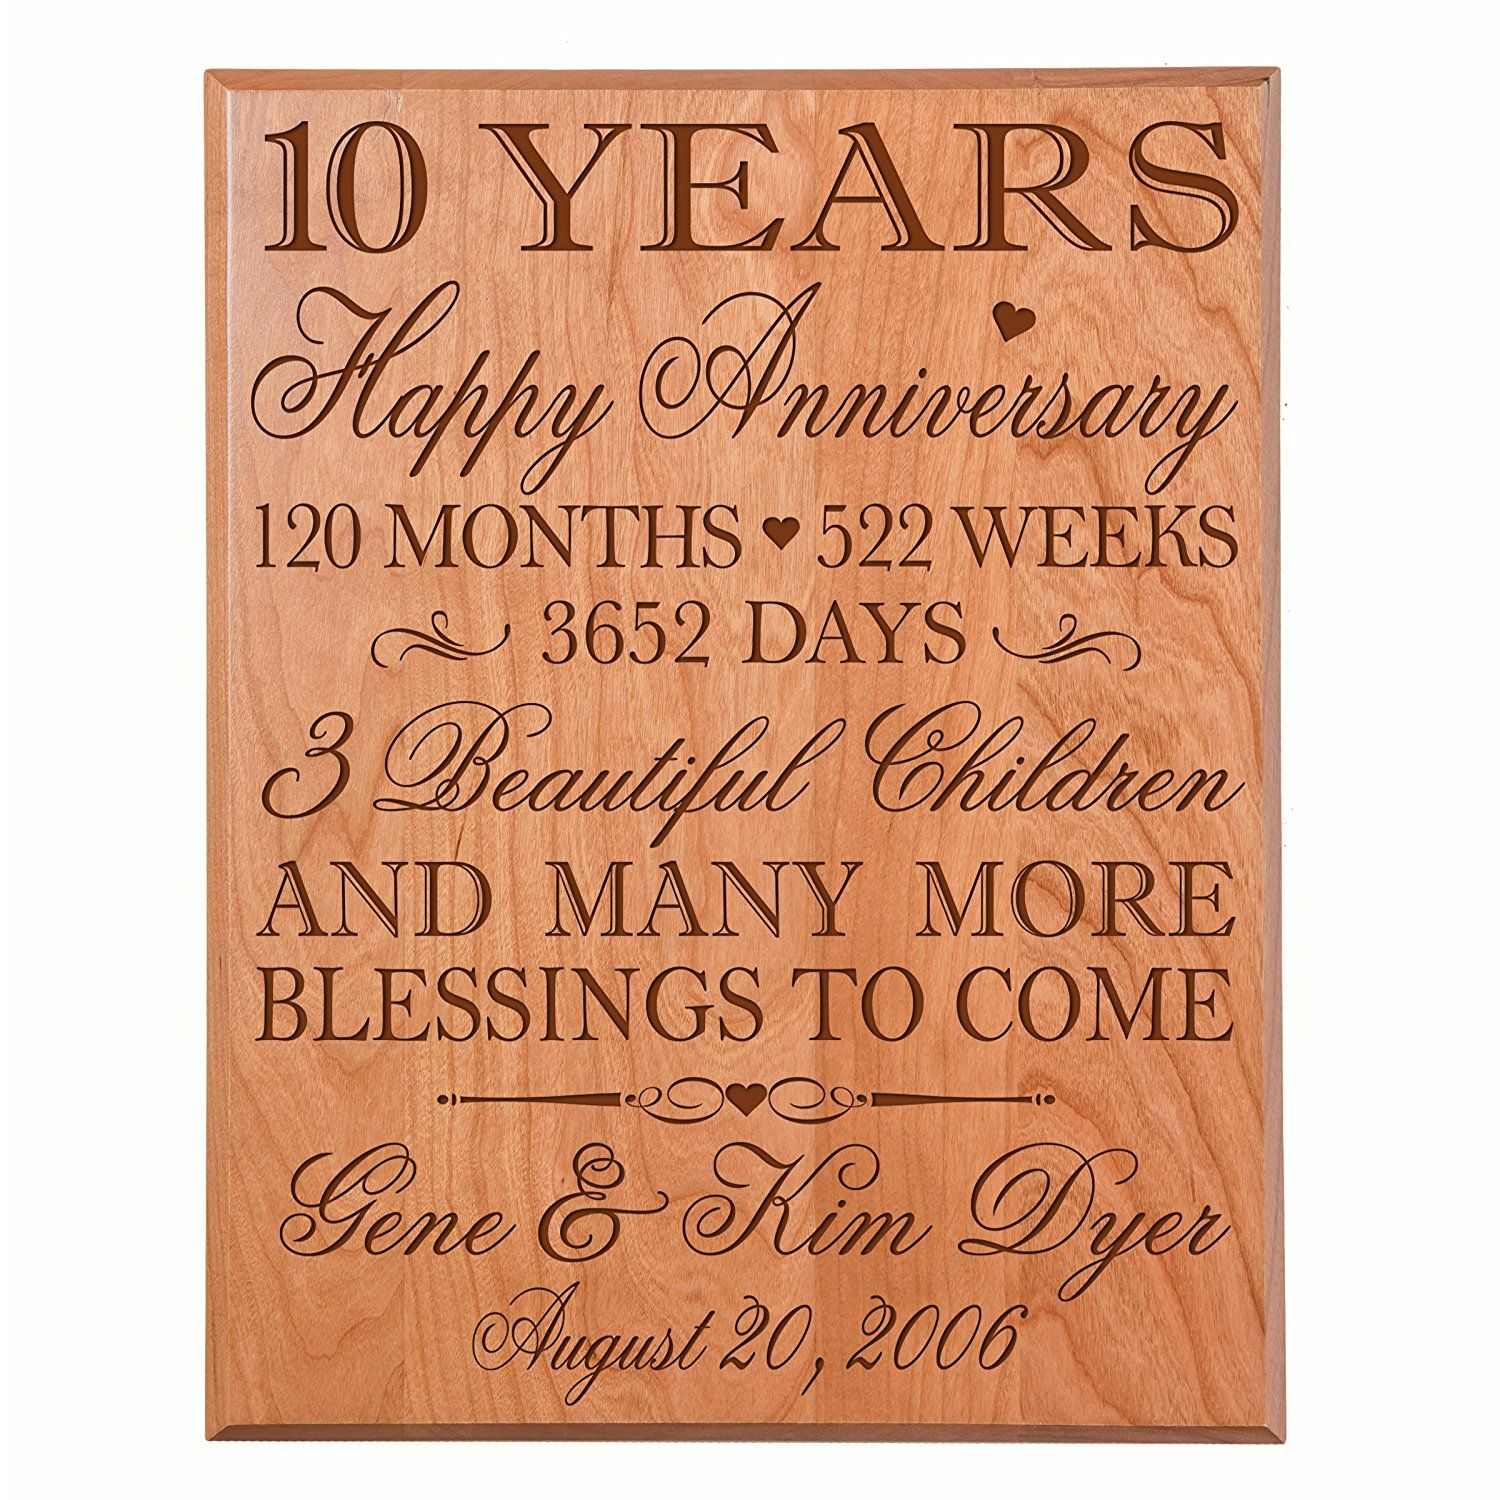 Personalized 10 Year Wedding Anniversary Gifts For 10th Ideas Her Him